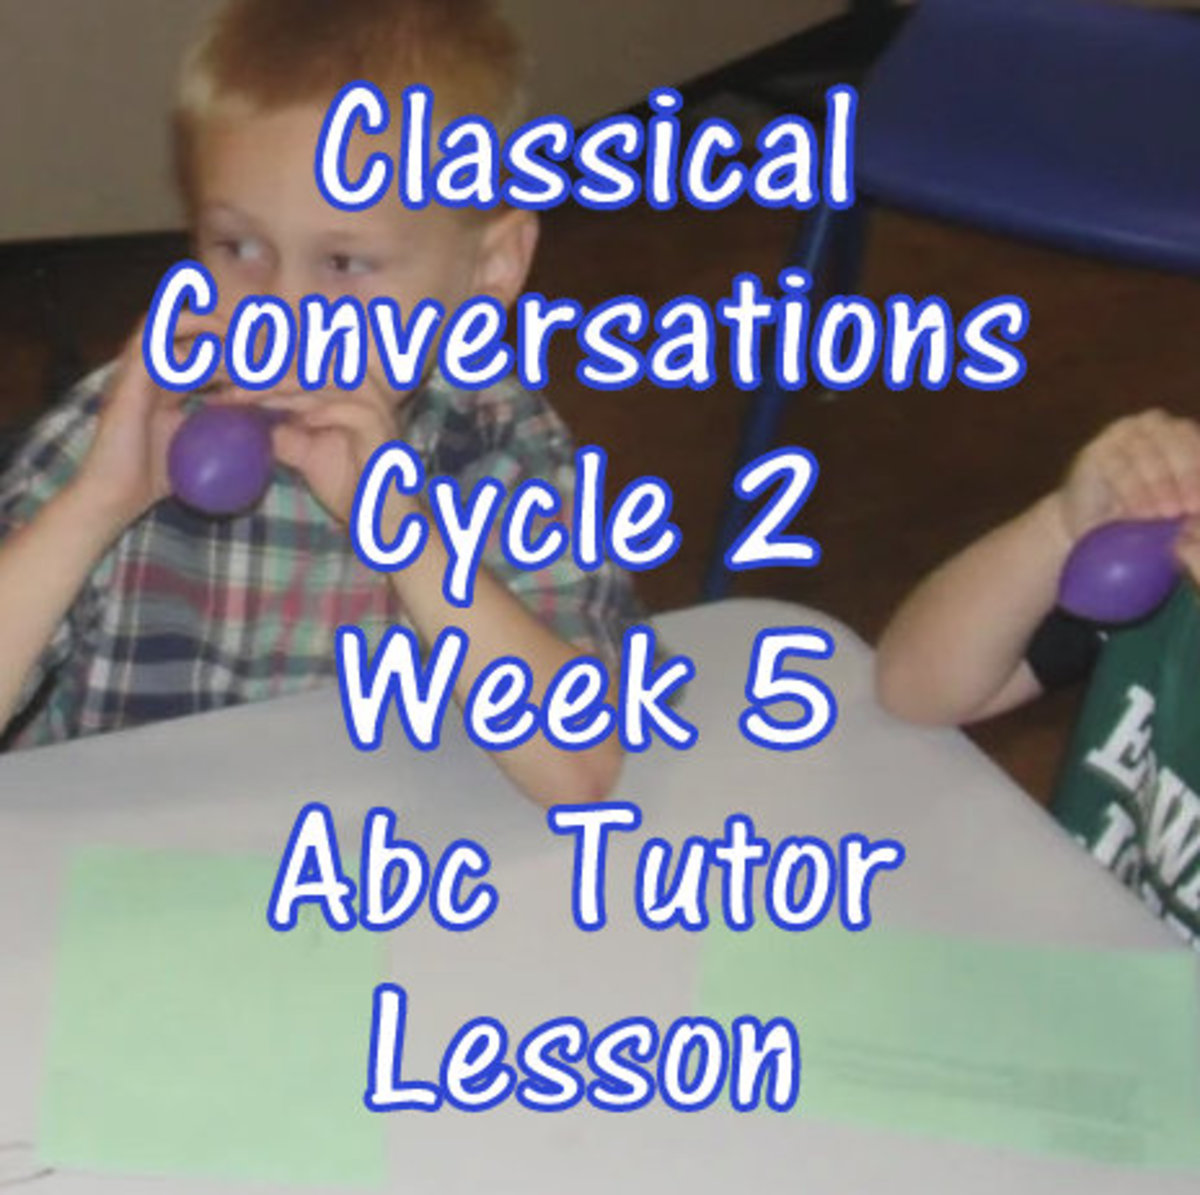 CC Classical Conversations Cycle 2 Week 5 Abc Tutor Lesson Plan